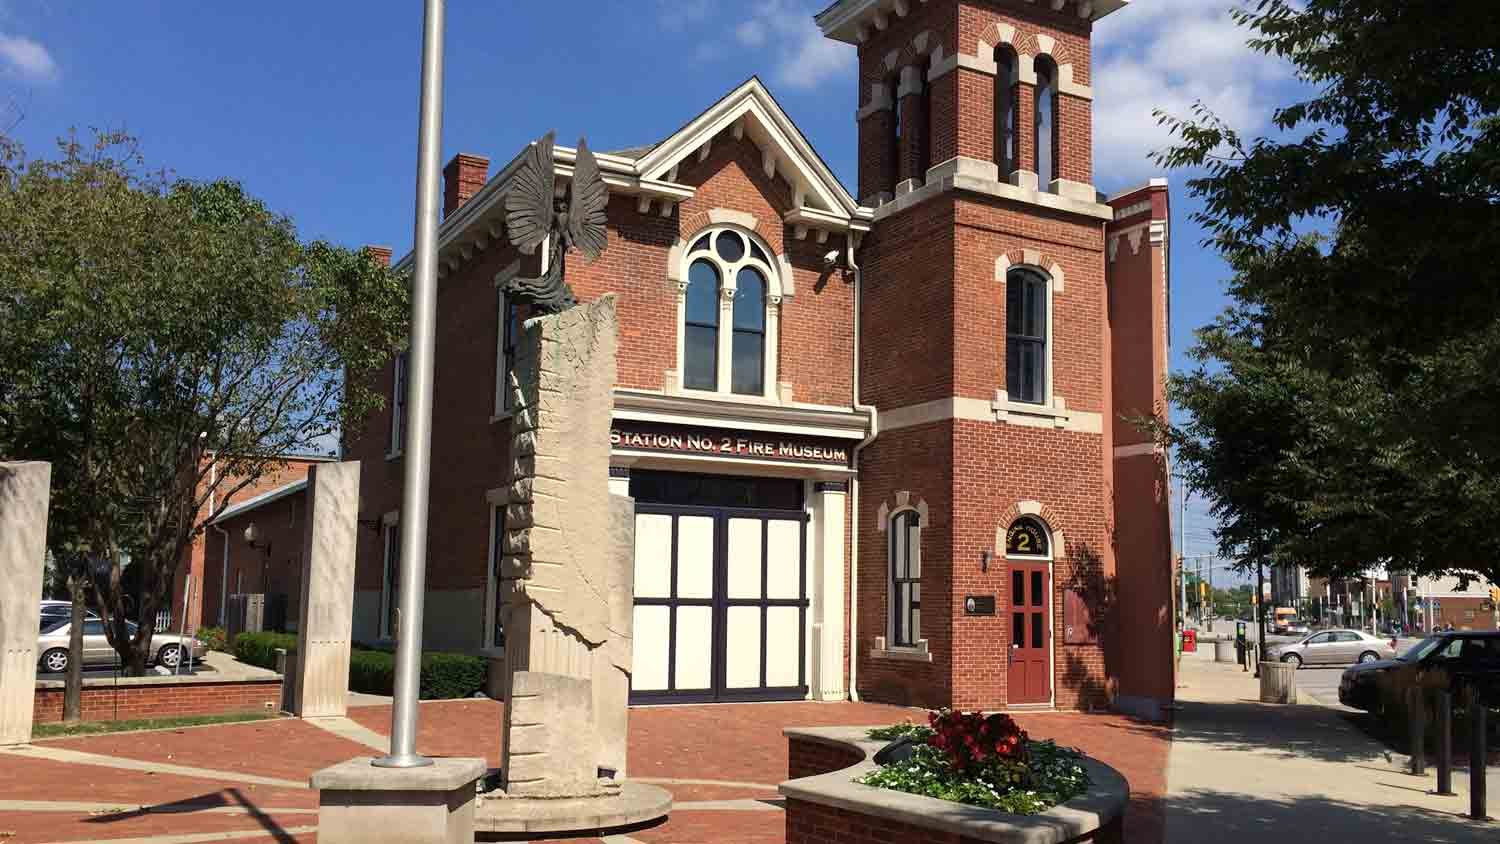 Indianapolis Firefighters Museum & Historical Society